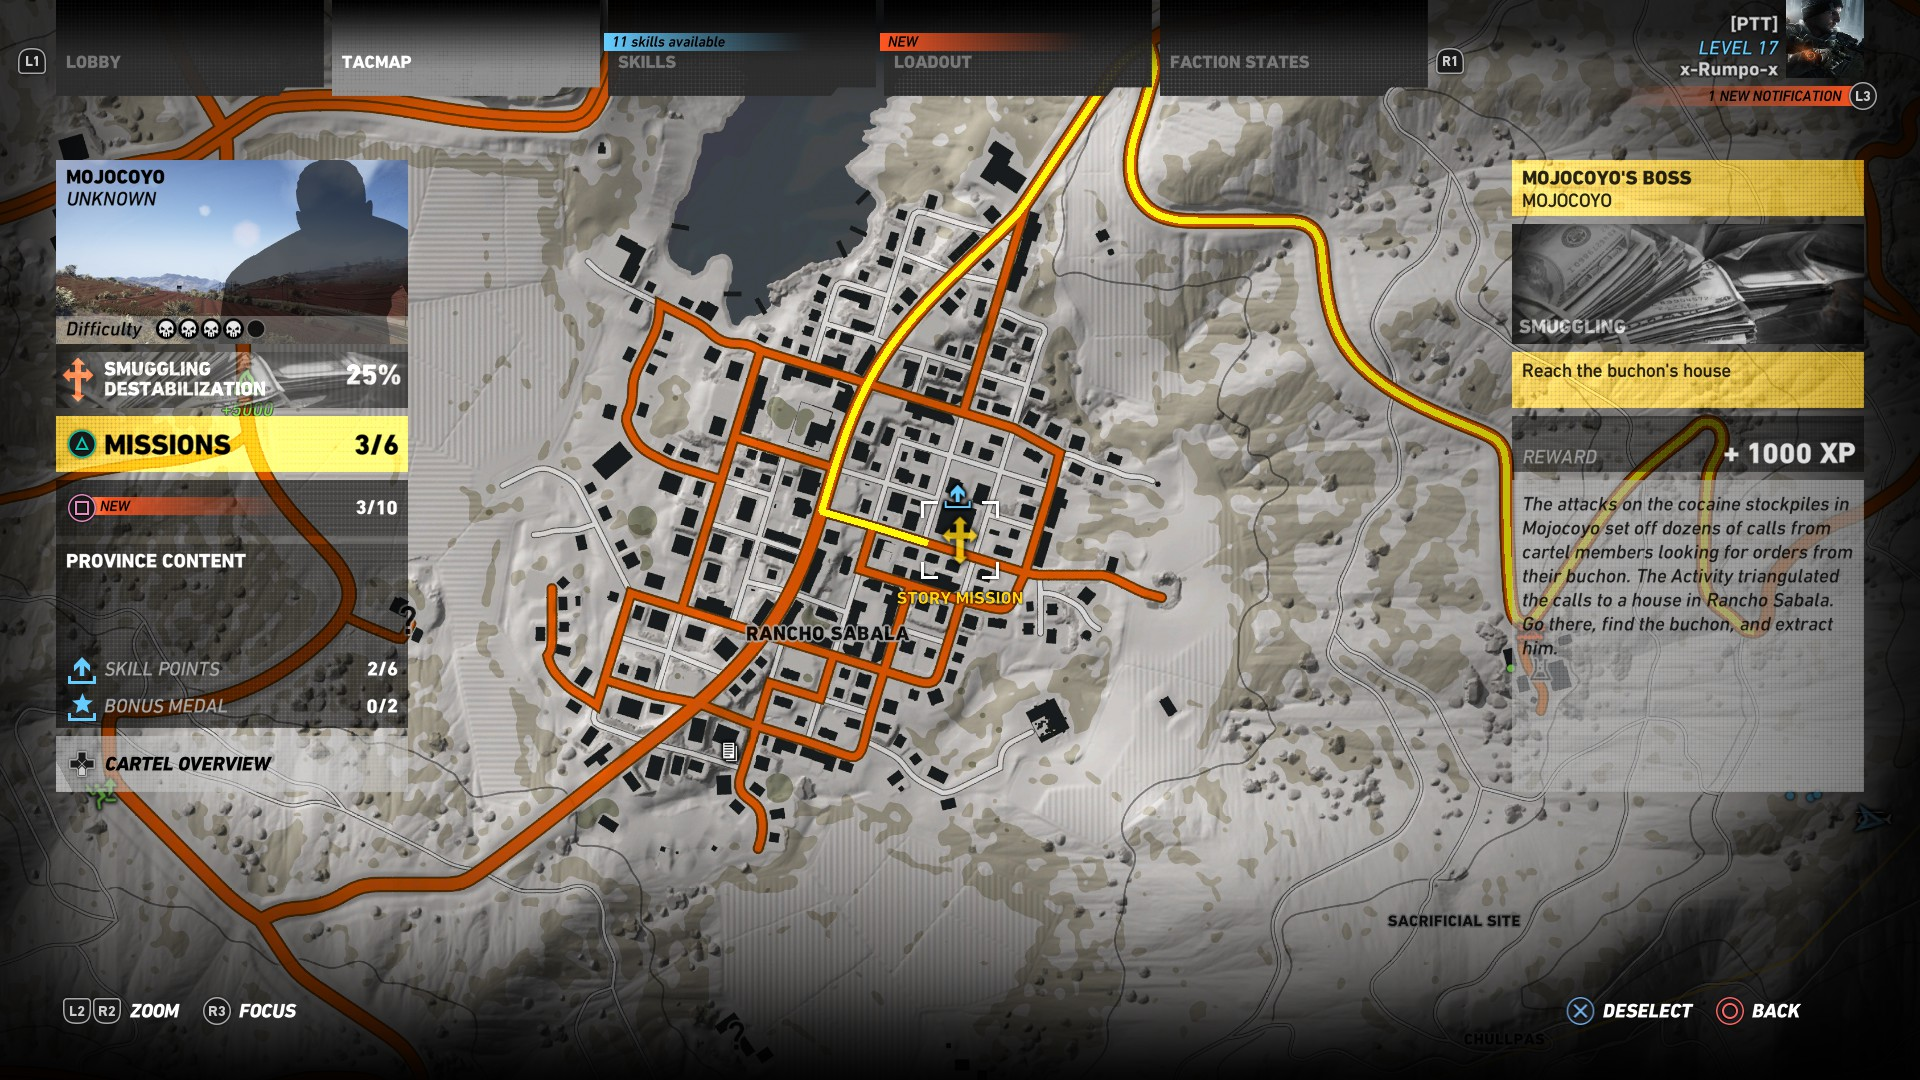 This map shows the mission area for the Mojocoyo's Boss mission in Ghost Recon Wildlands